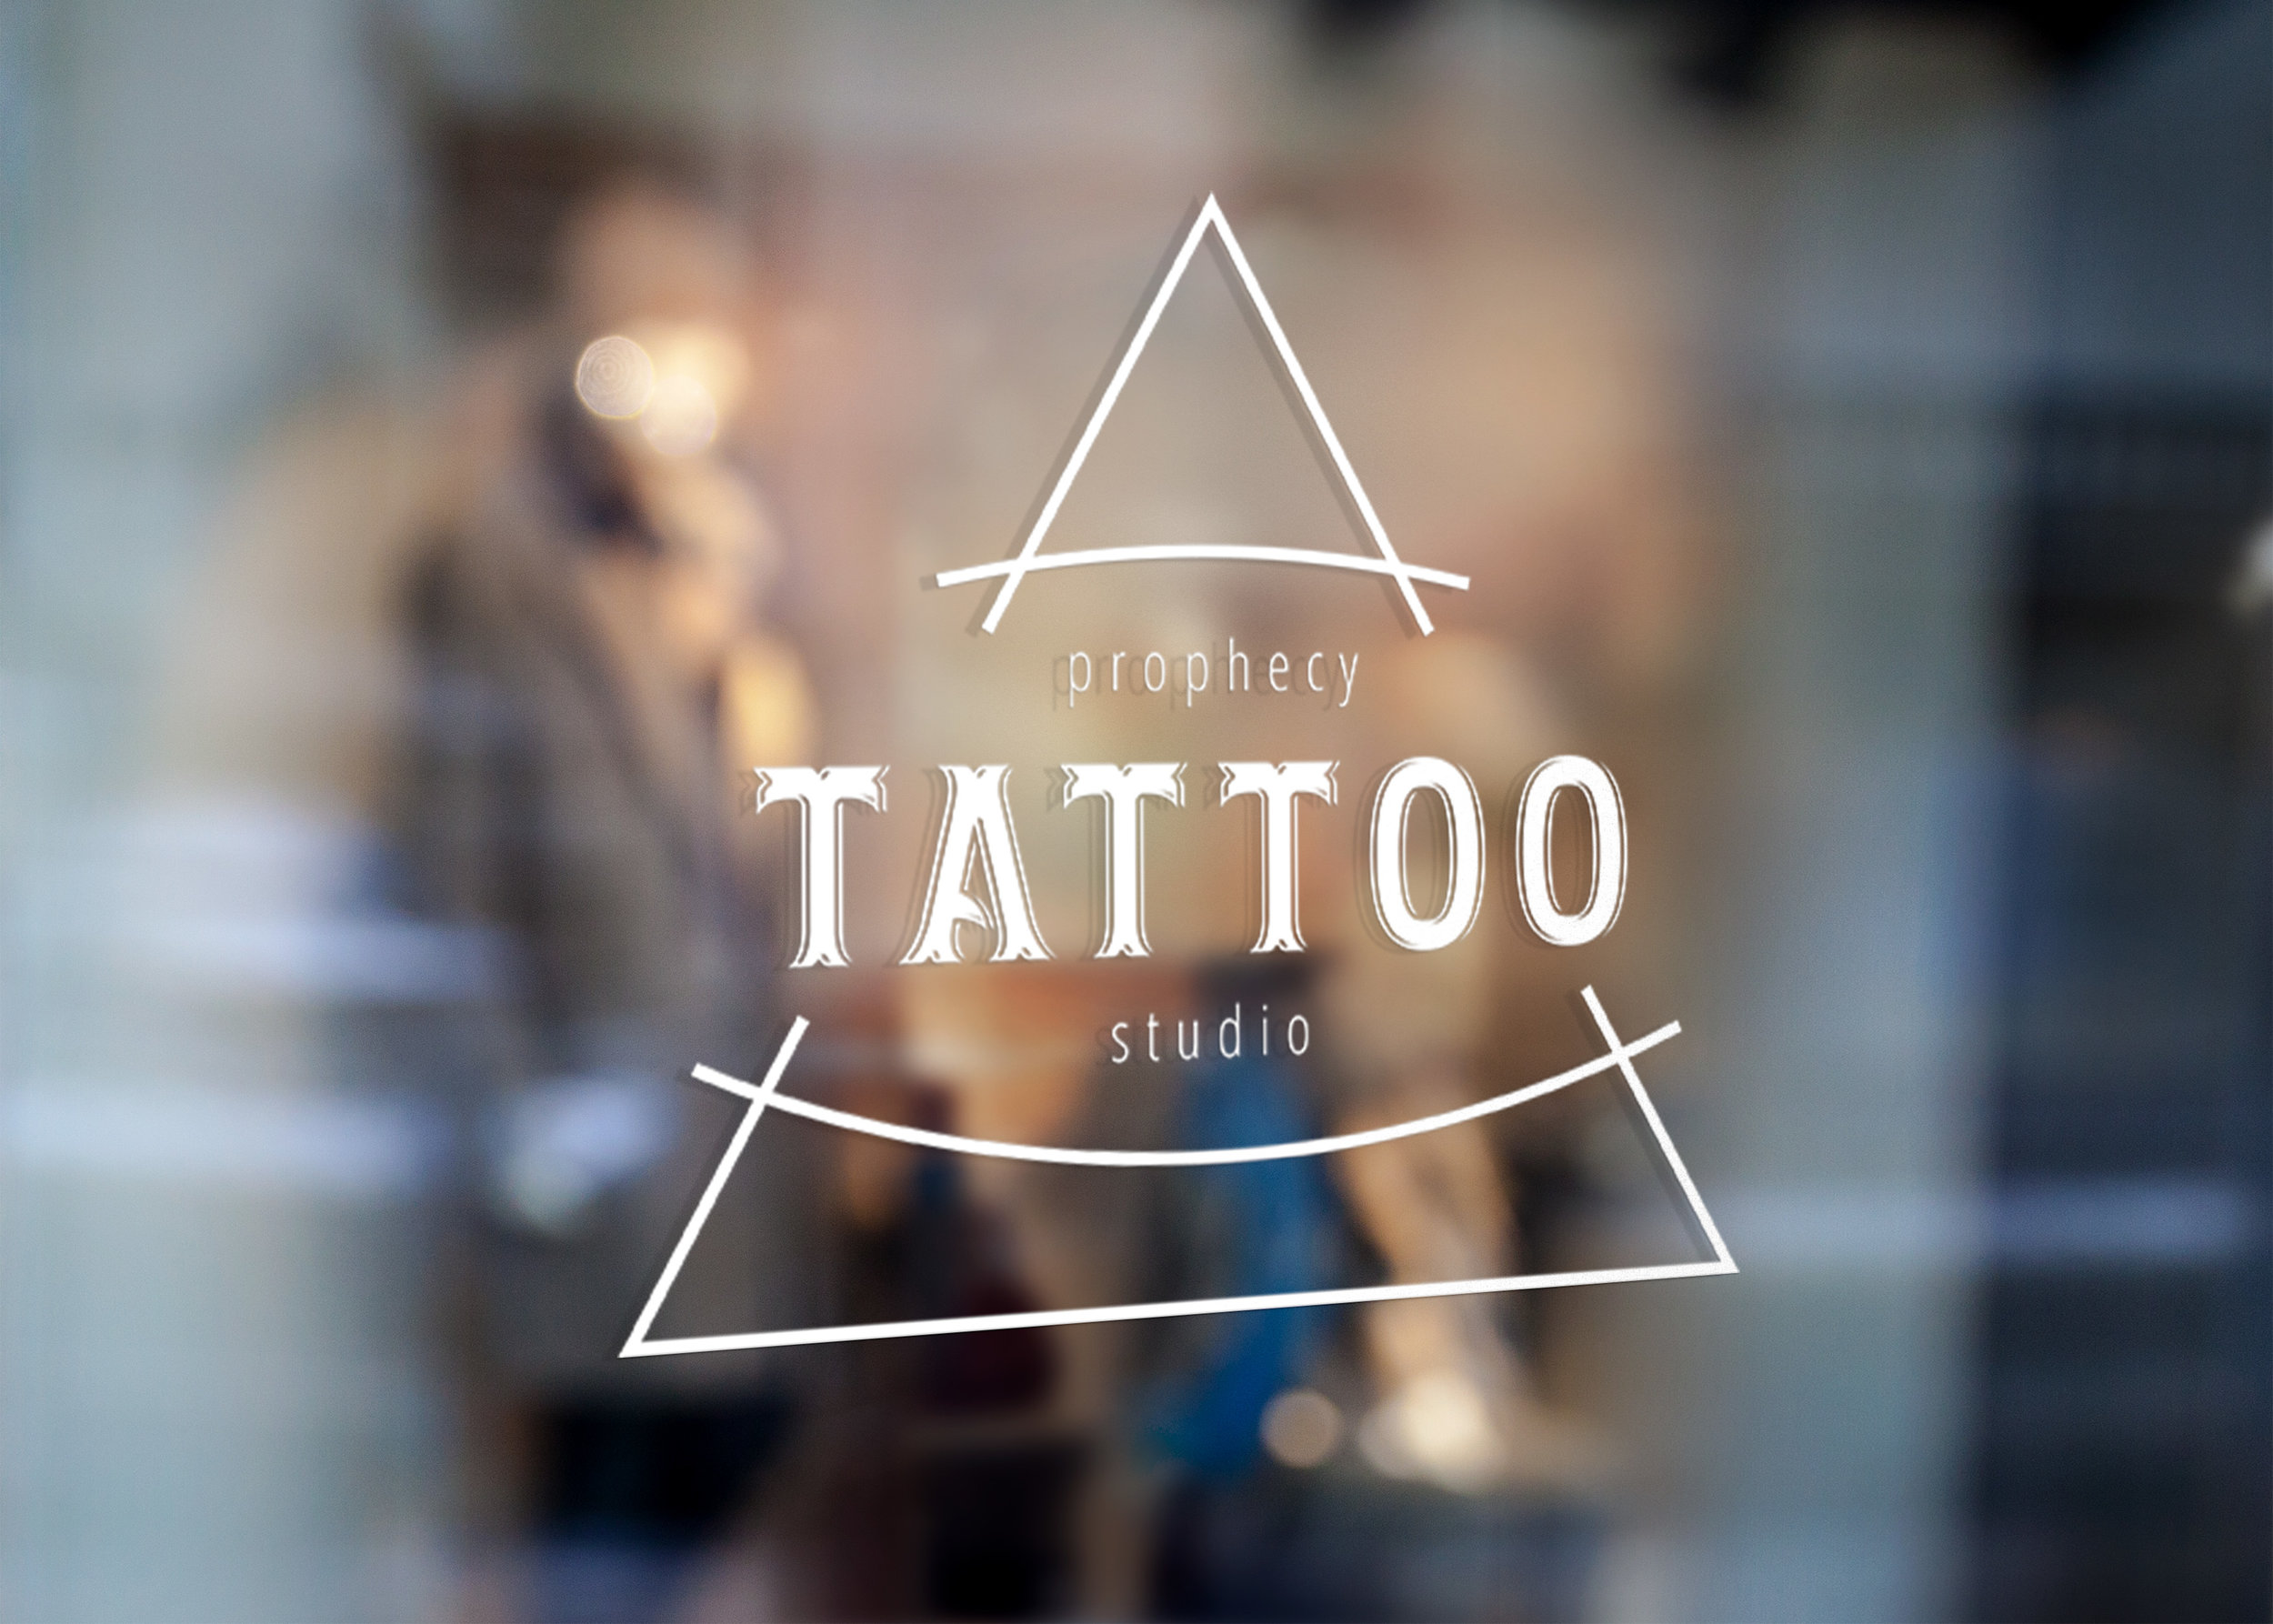 Prophecy Tattoo Studio Logo Mockup.jpg